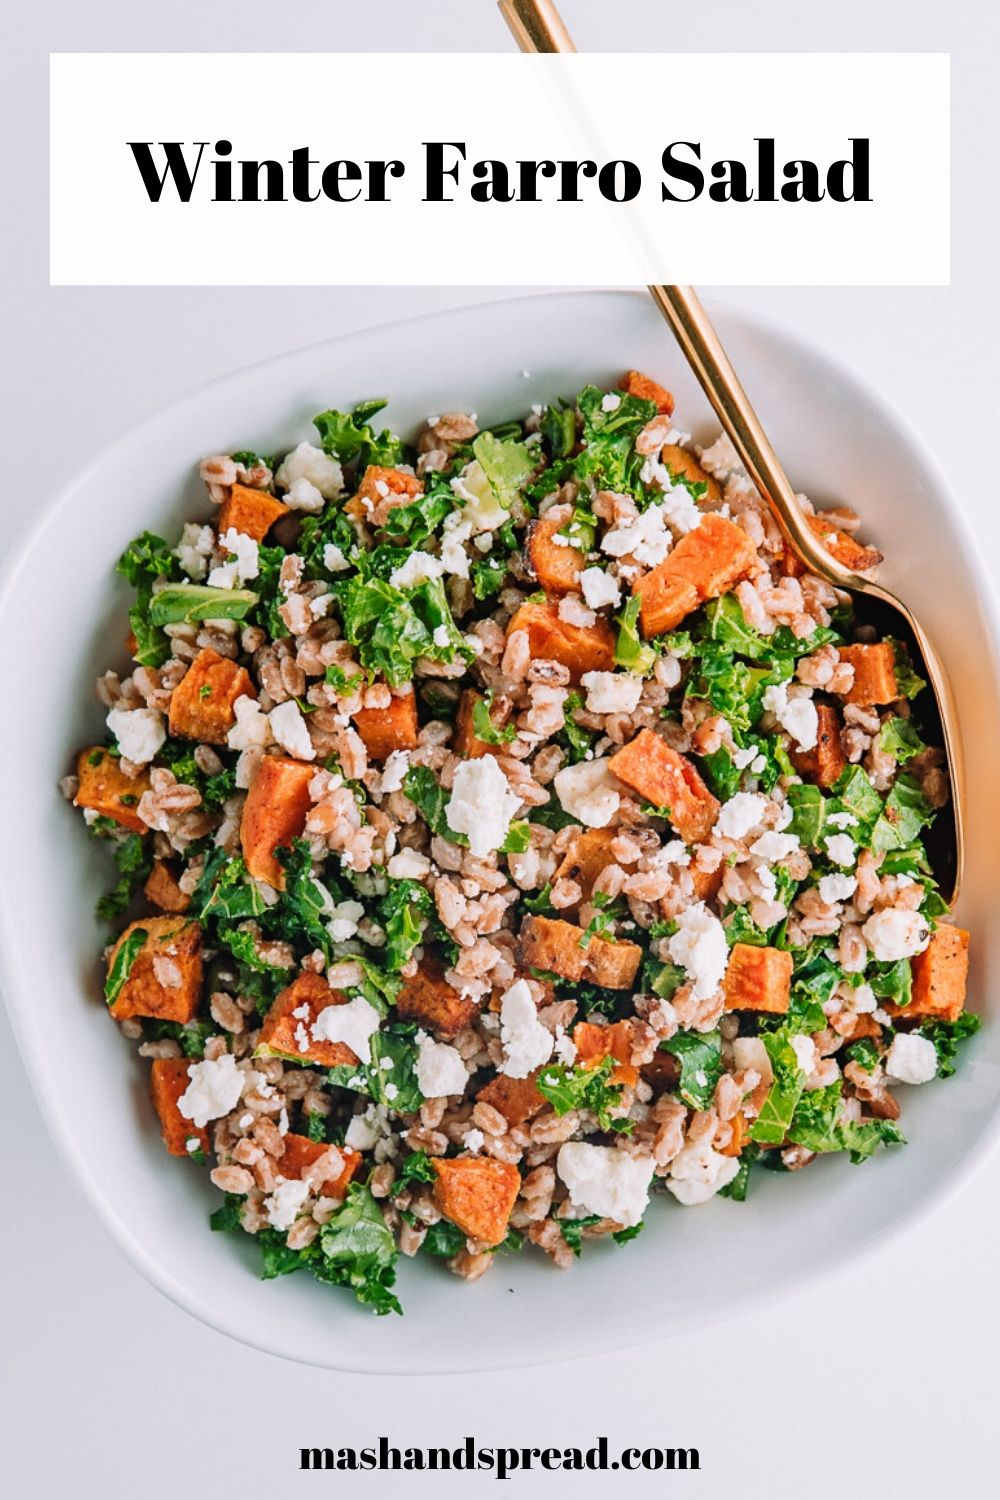 What's in my bowl? A filling, healthy seasonal cozy meal- Winter Faro Salad  made with Nature's Green's Kale. Filled with protein, fiber, and other vitamins and mineral. Get the recipe here! #highfiber #meatlessmeals #wintermeals #recipe #kale #healthyrecipes